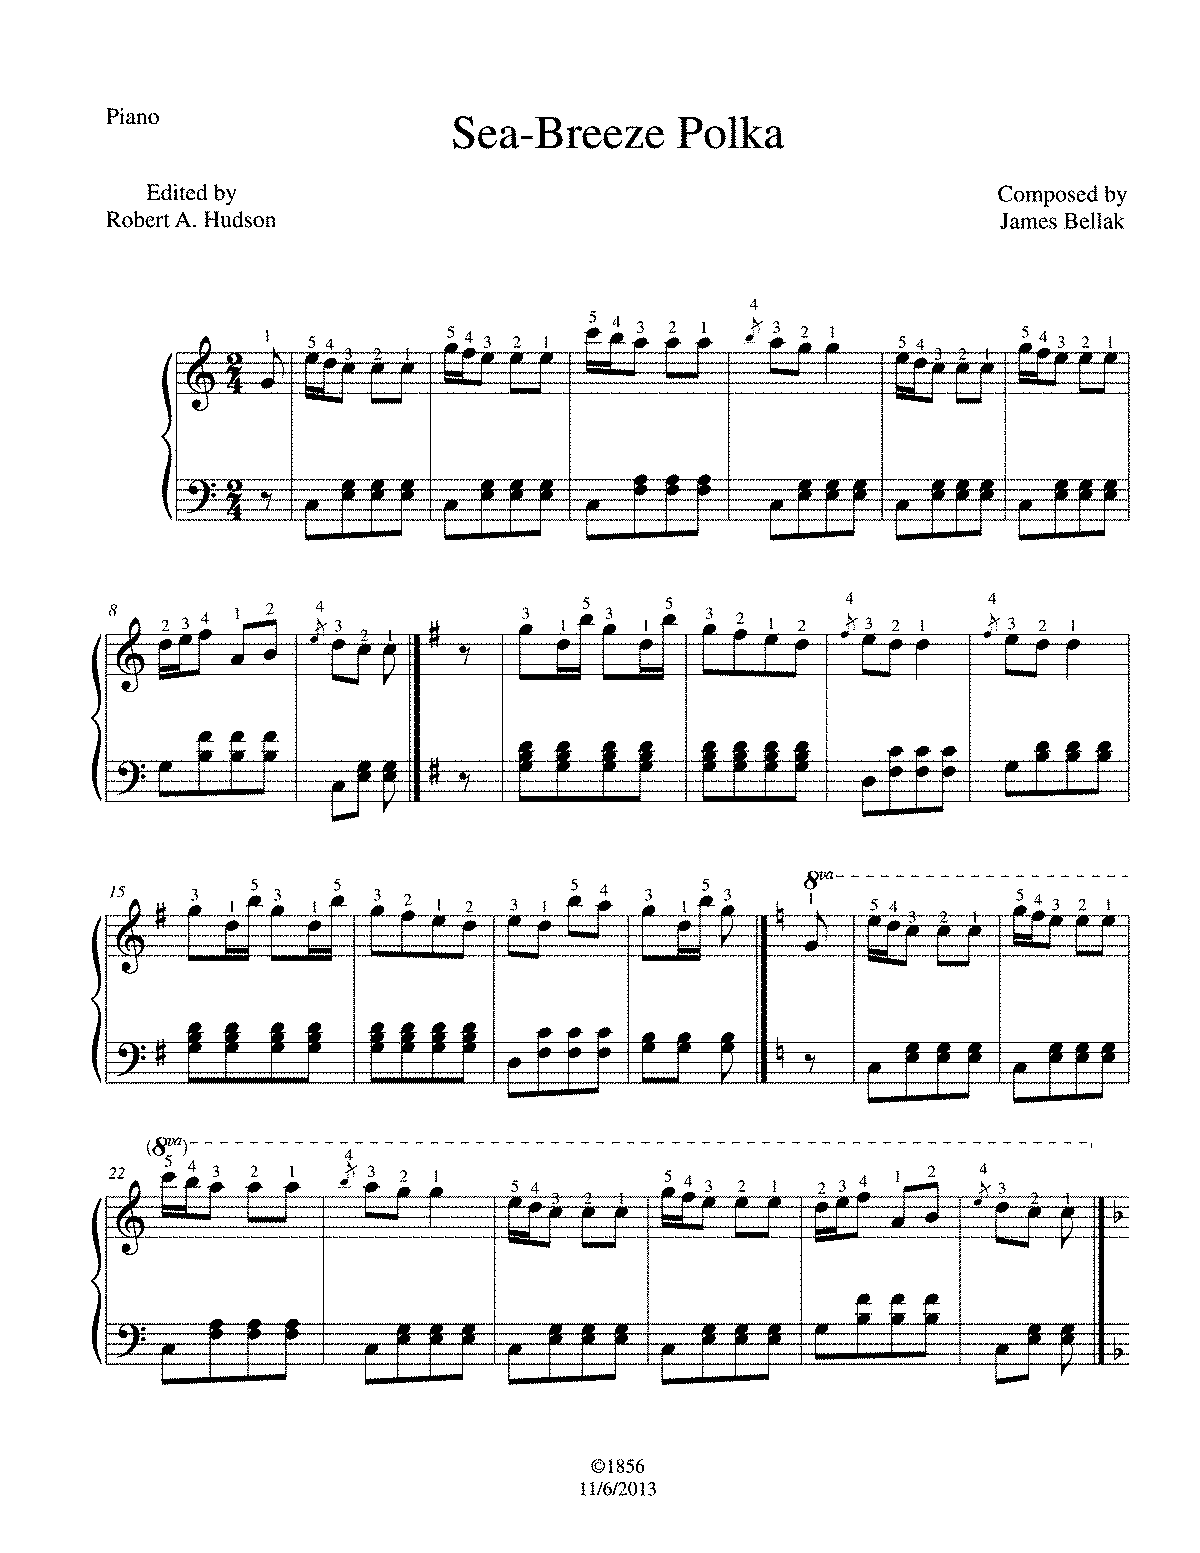 PMLP489107-Sea-Breeze Polka.pdf